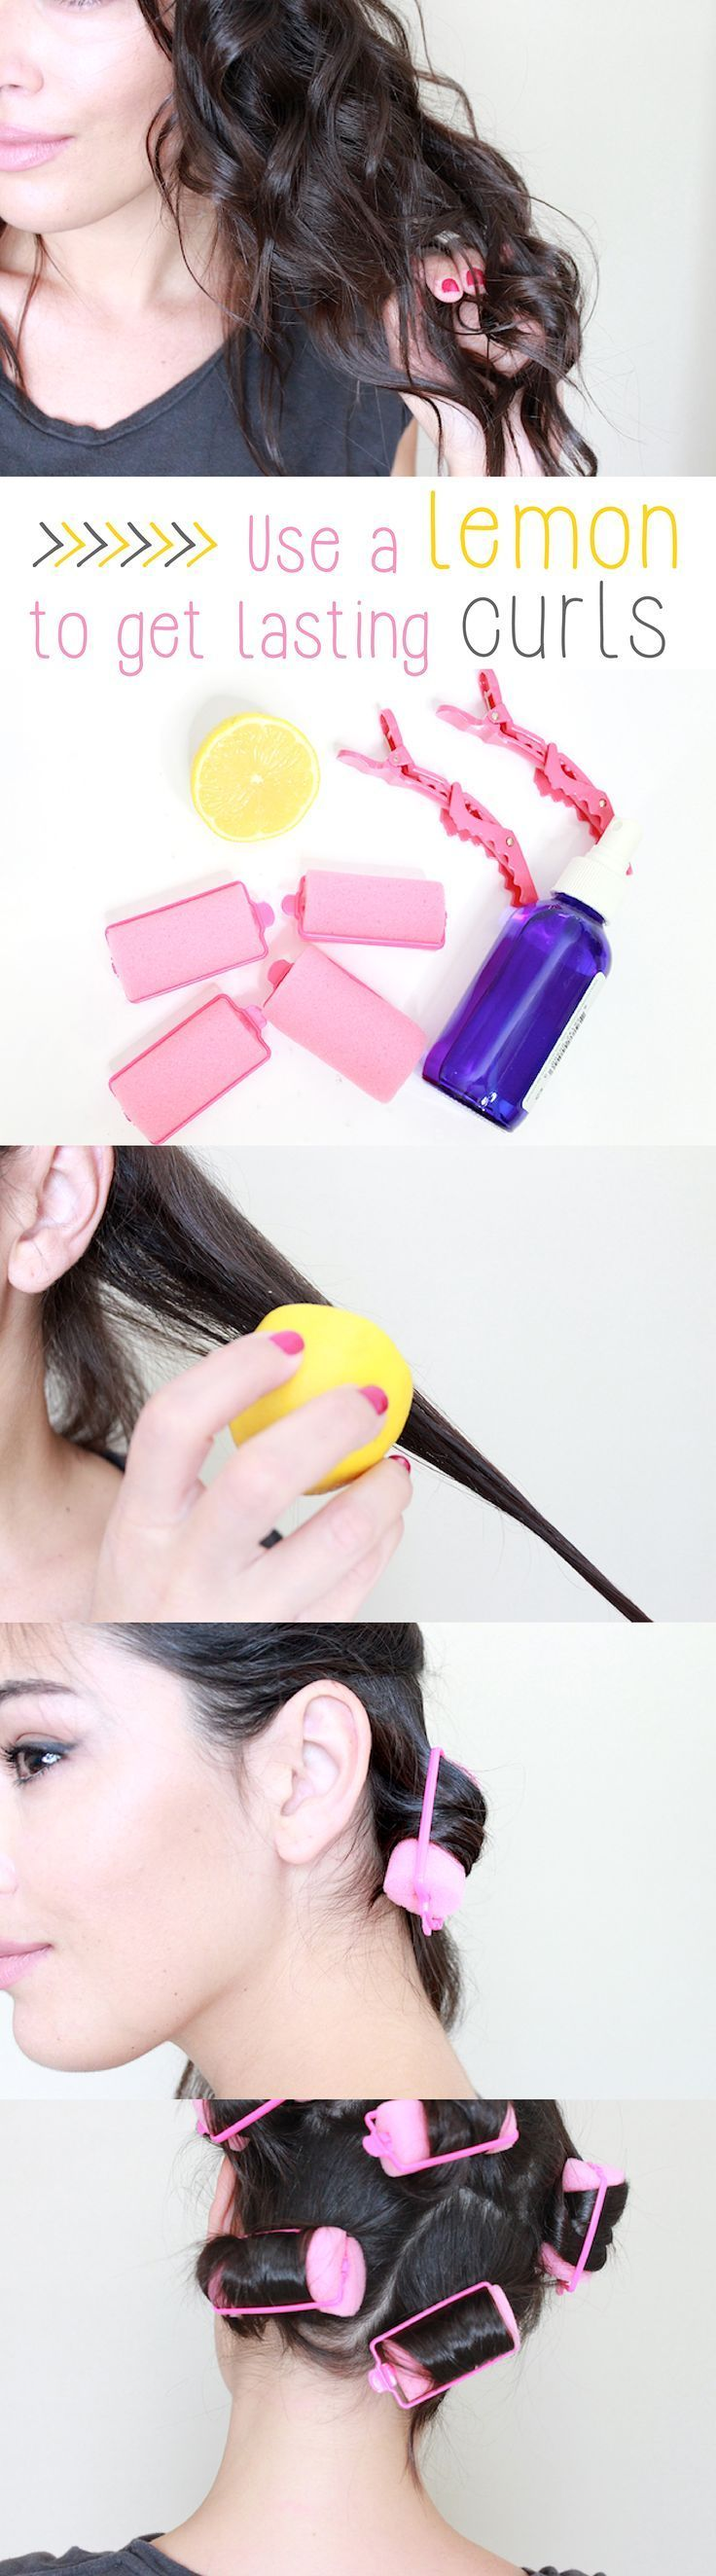 This works on your hair, no matter how long or thick! Forget harsh products and use lemon on your hair right before setting in the curls overnight. More details: http://www.ehow.com/ehow-style/blog/how-to-get-long-lasting-curls-with-a-lemon/?utm_source=pi http://ultrahairsolution.com/how-to-grow-natural-hair-fast-and-healthy/home-remedies-for-hair-growth-and-thickness/